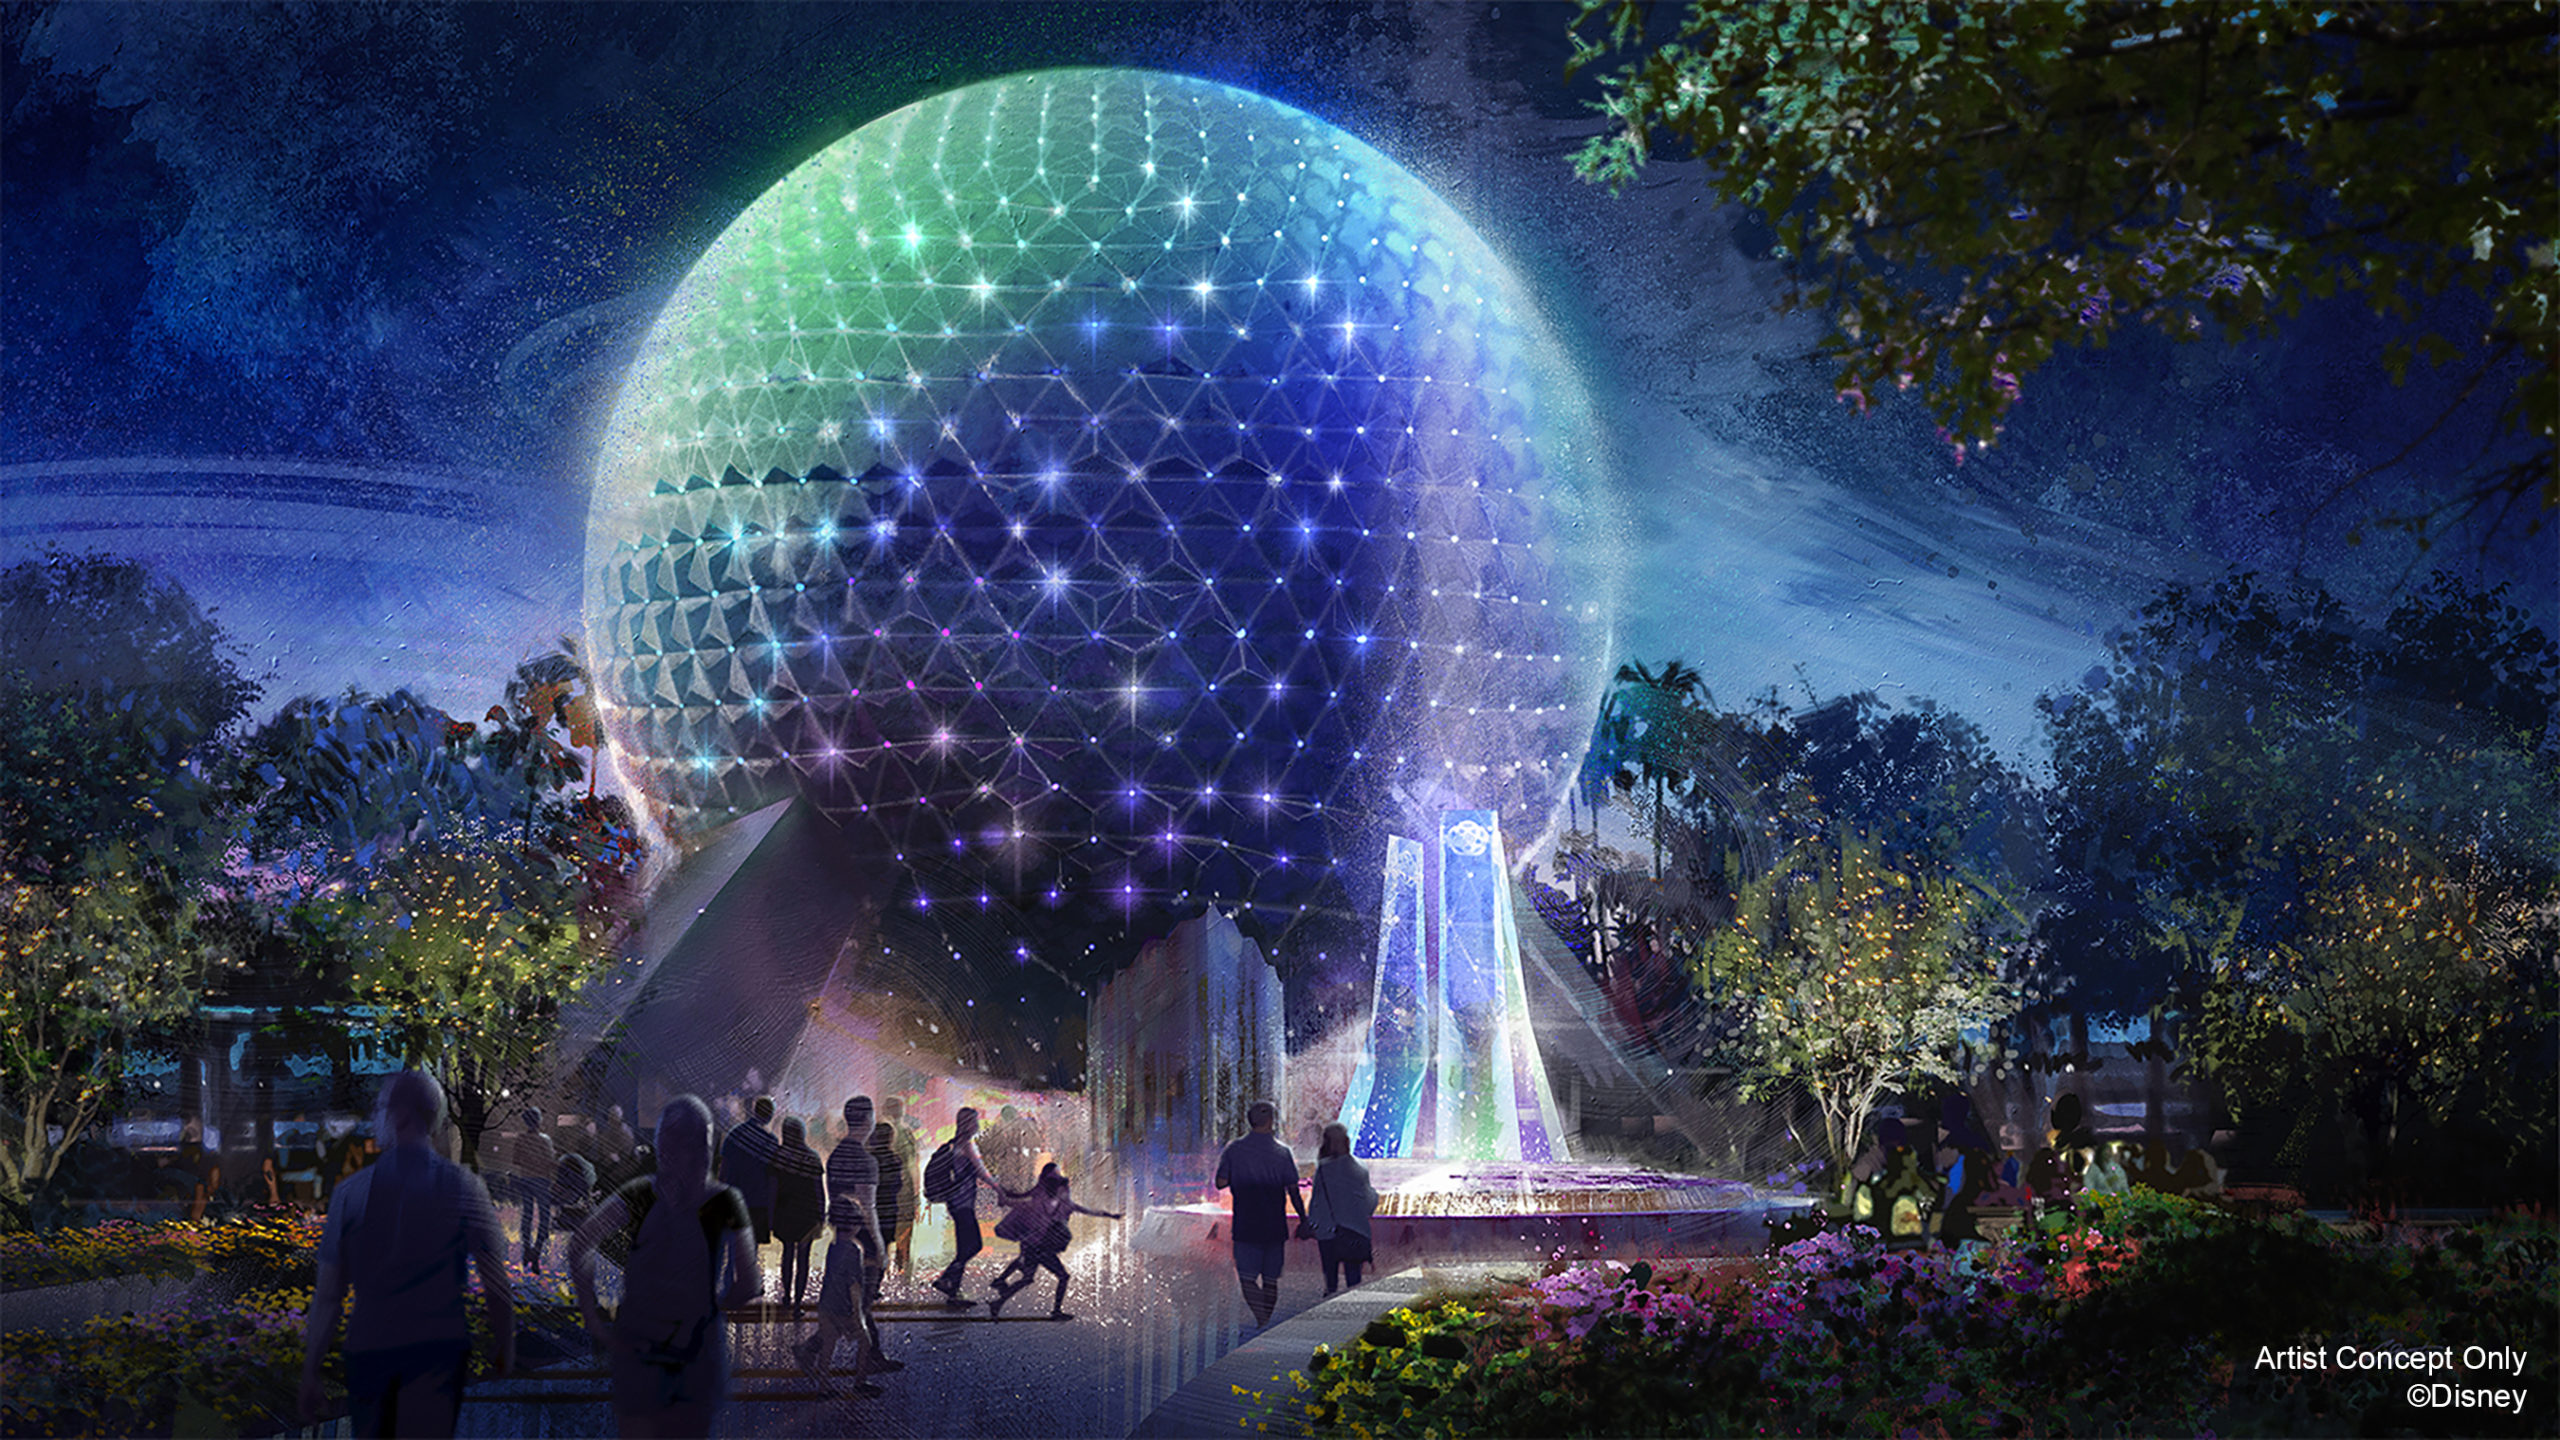 Spaceship Earth will come to life at night with their own EARidescent glow